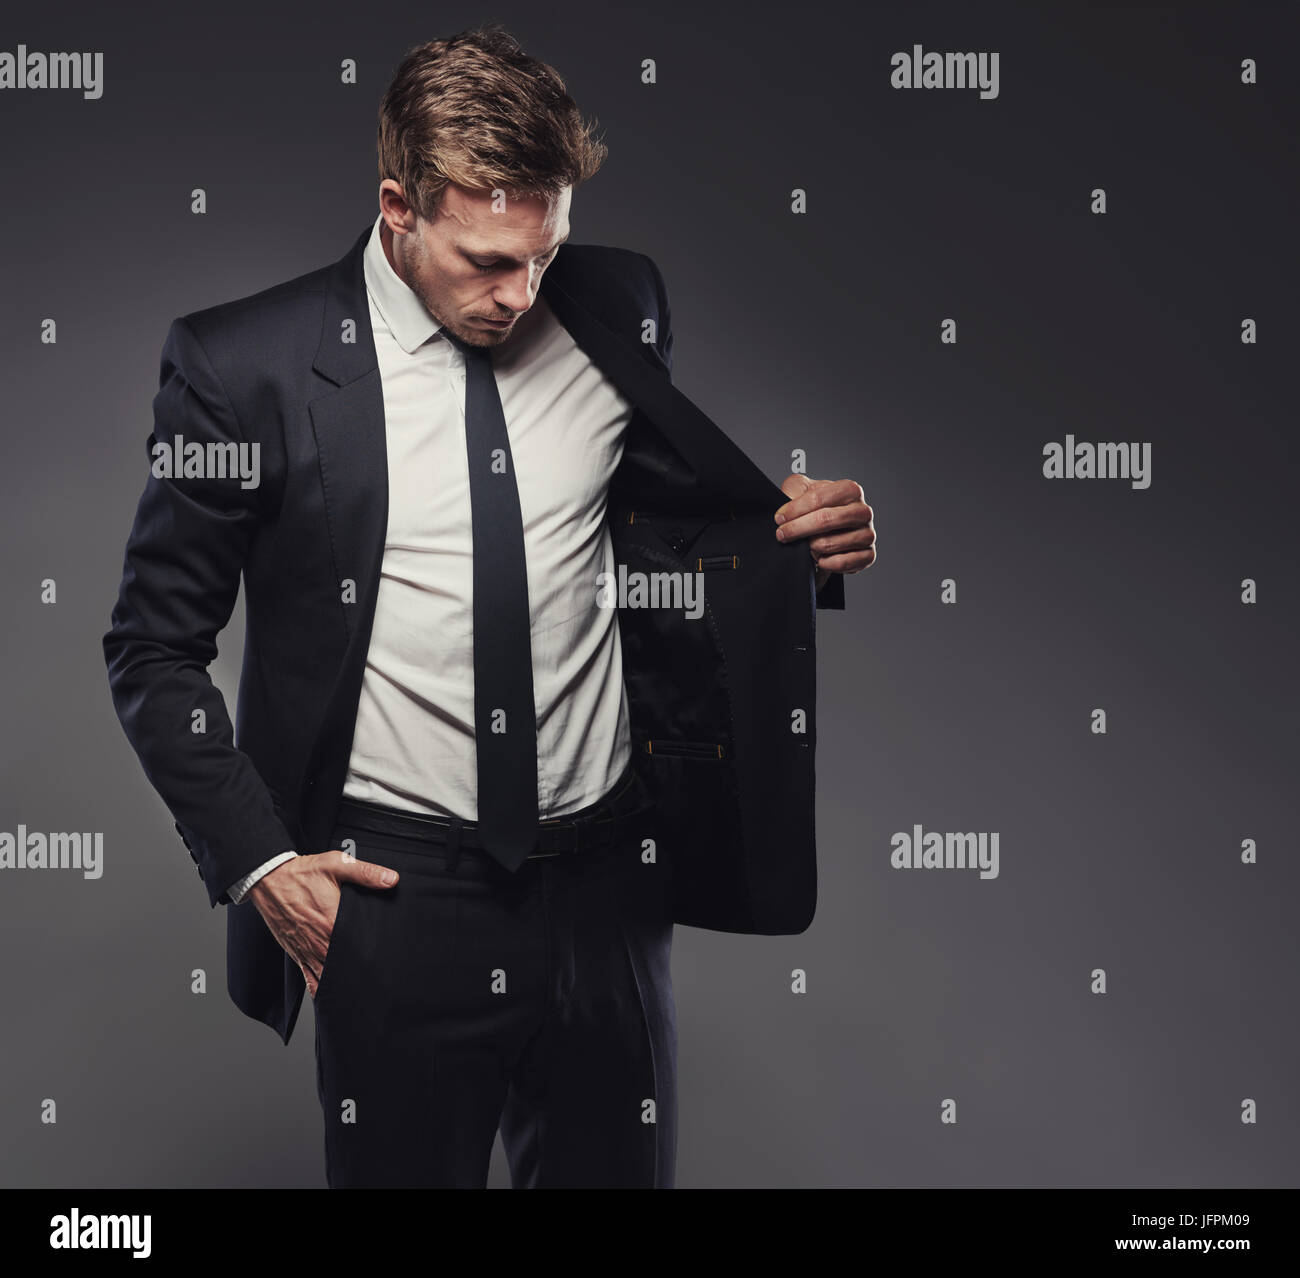 Suave young businessman checking out the jacket of a stylish black suit standing alone in a studio against a grey - Stock Image